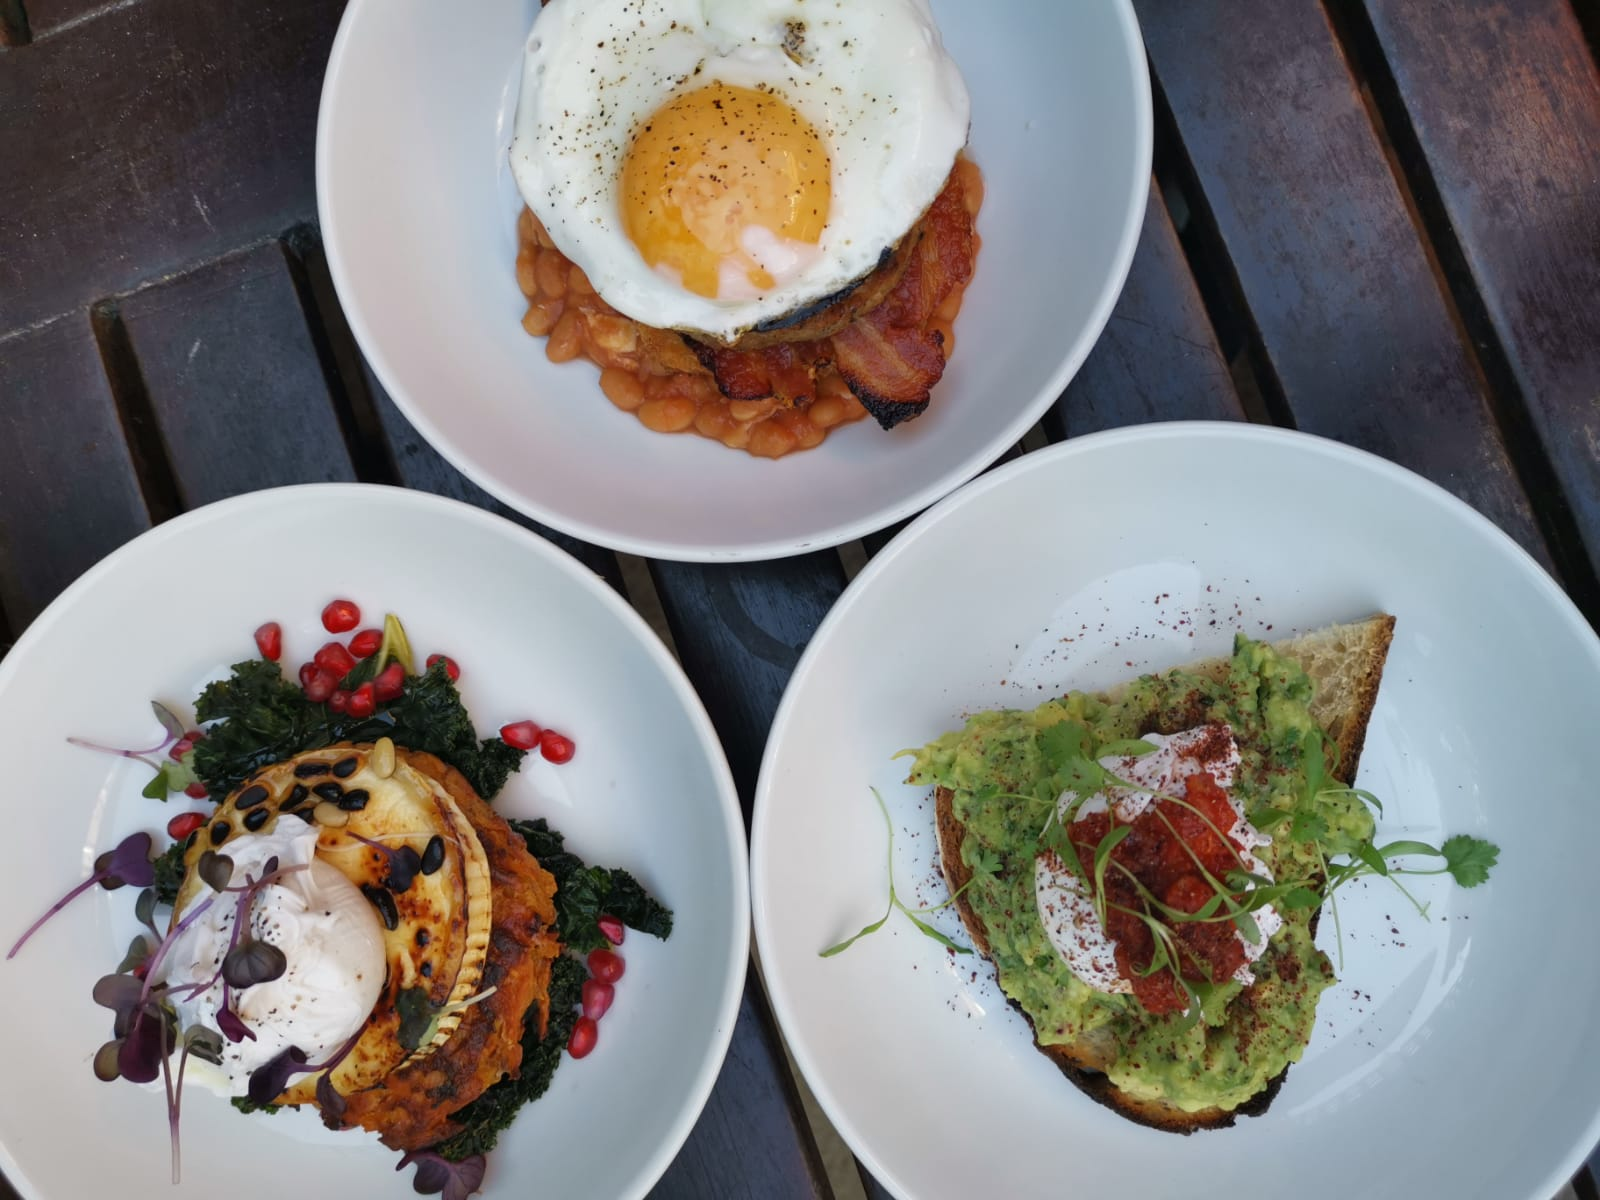 Bottomless Brunch at Lost Boys Pizza